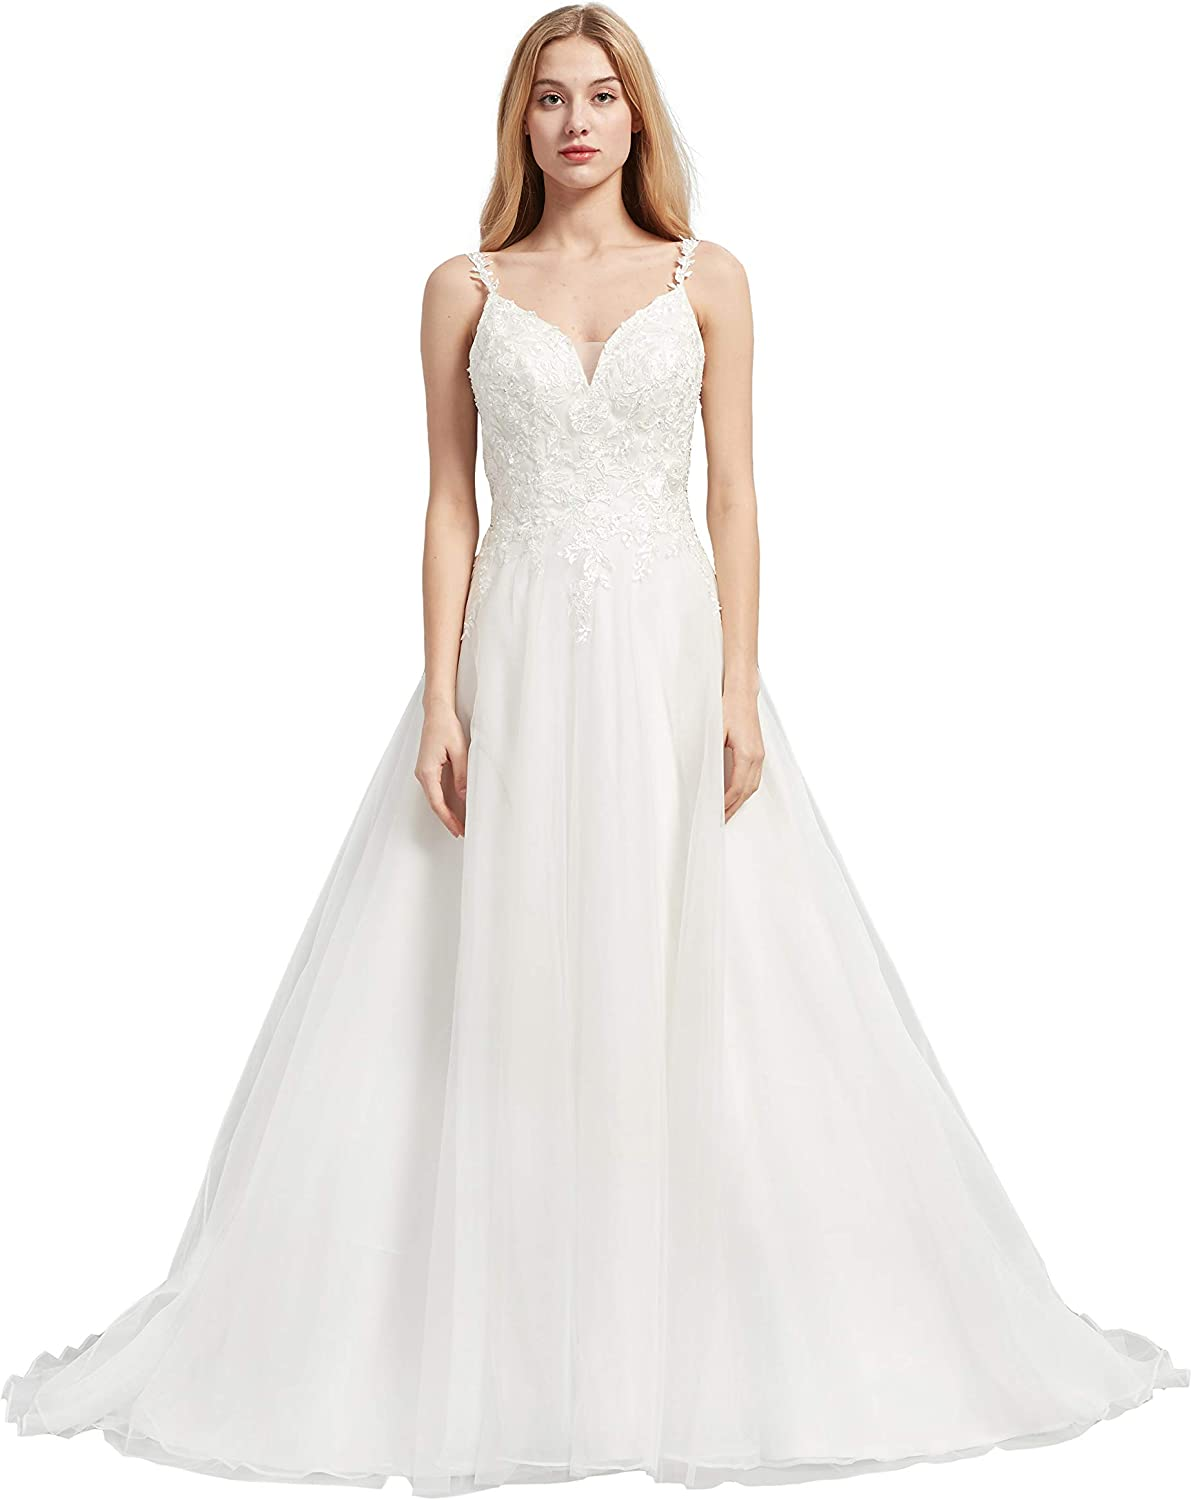 Special Bridal Sexy Super Special SALE held A-line Backless Tulle Wedding Appliques Dres Now on sale